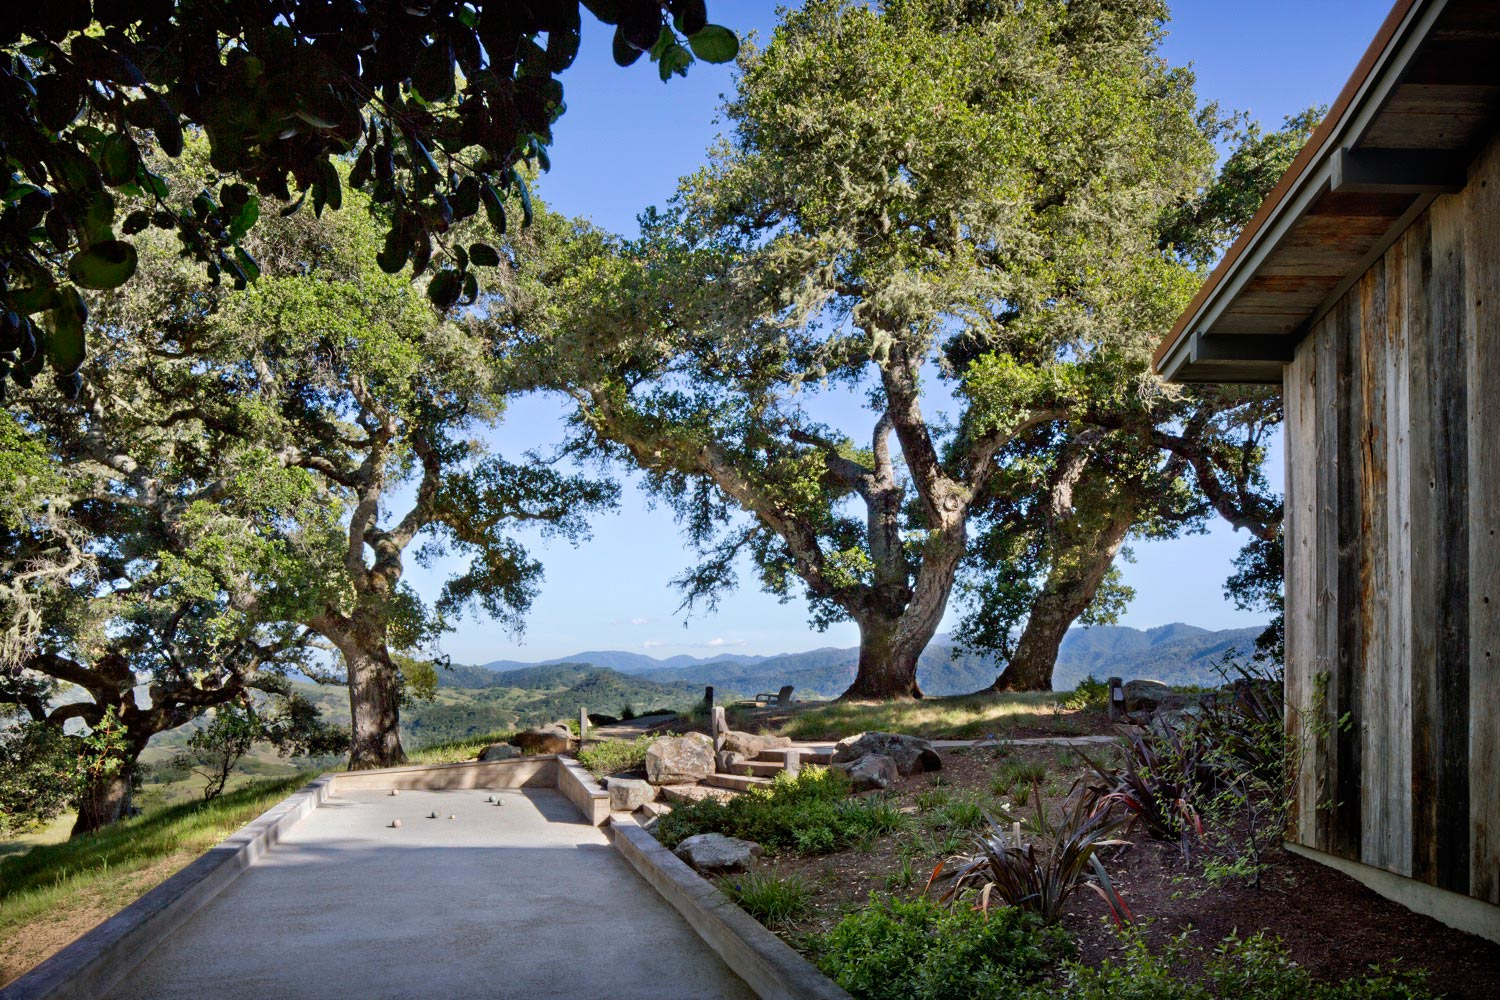 The bocce court is by the guest house and is surrounded by oaks.